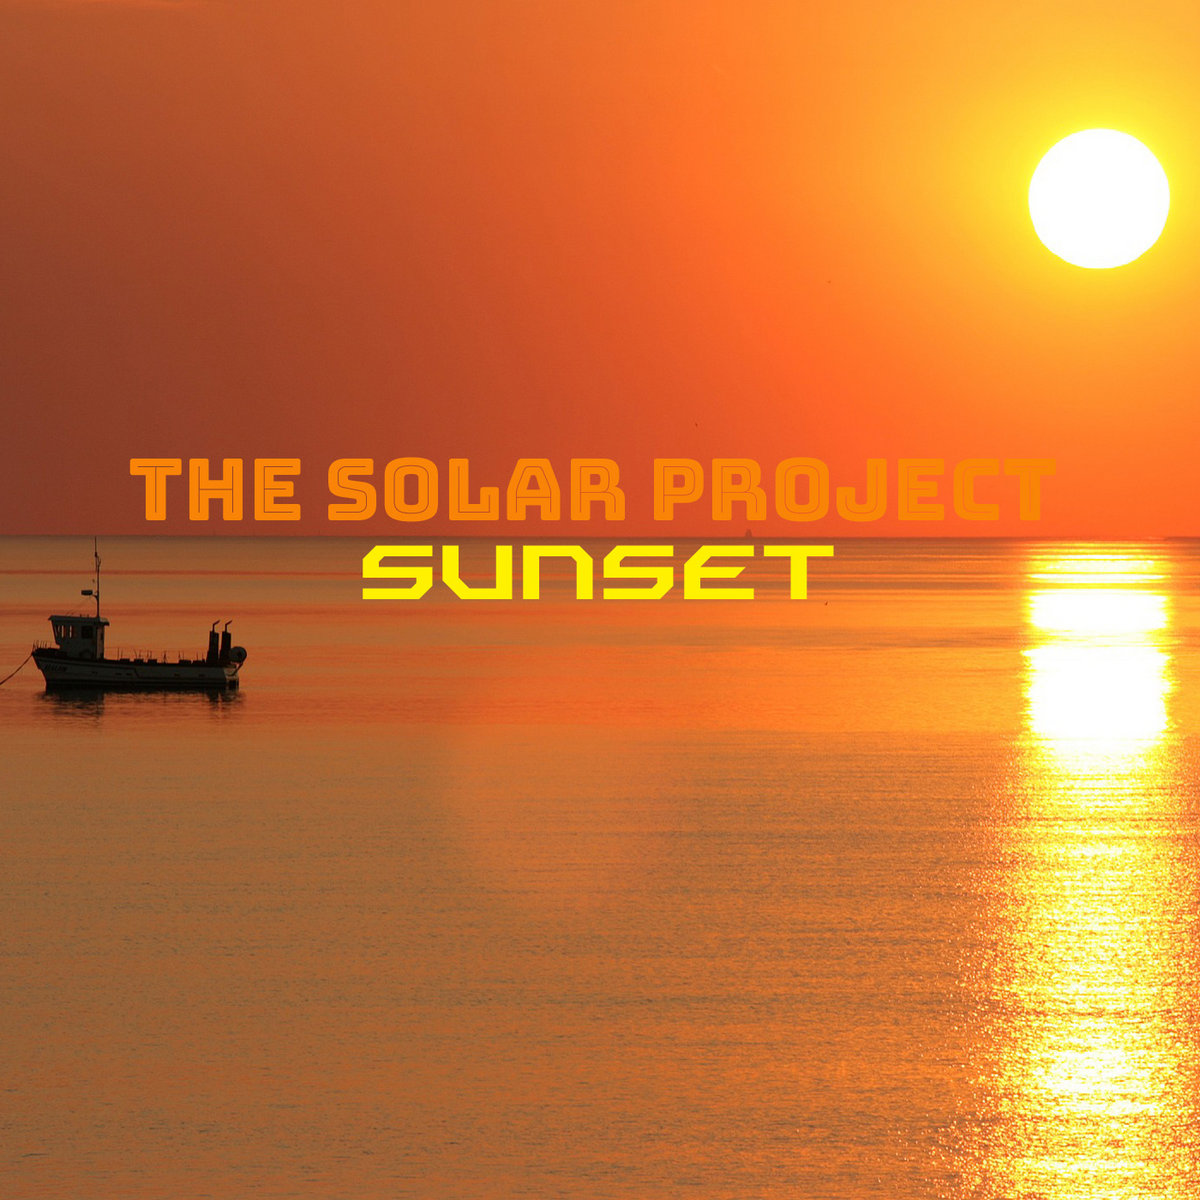 Sunset by The Solar Project